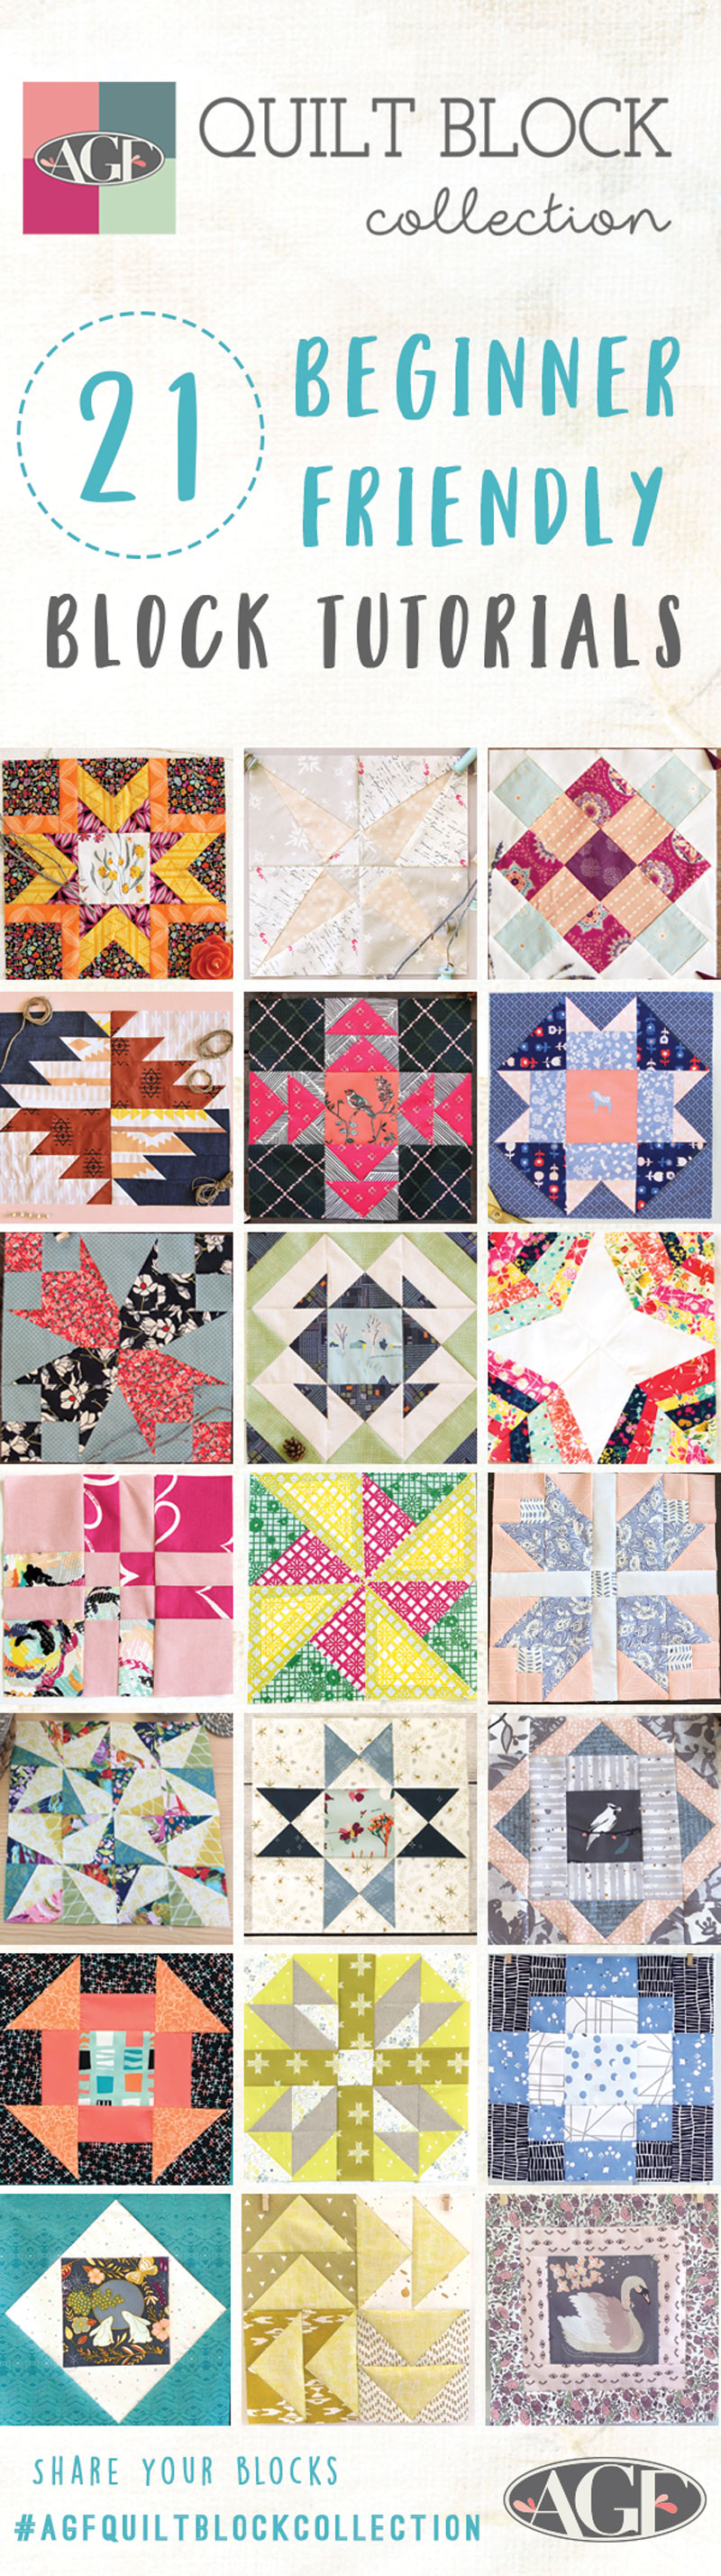 AGF-QUILT-BLOCK-GRAPHIC-new